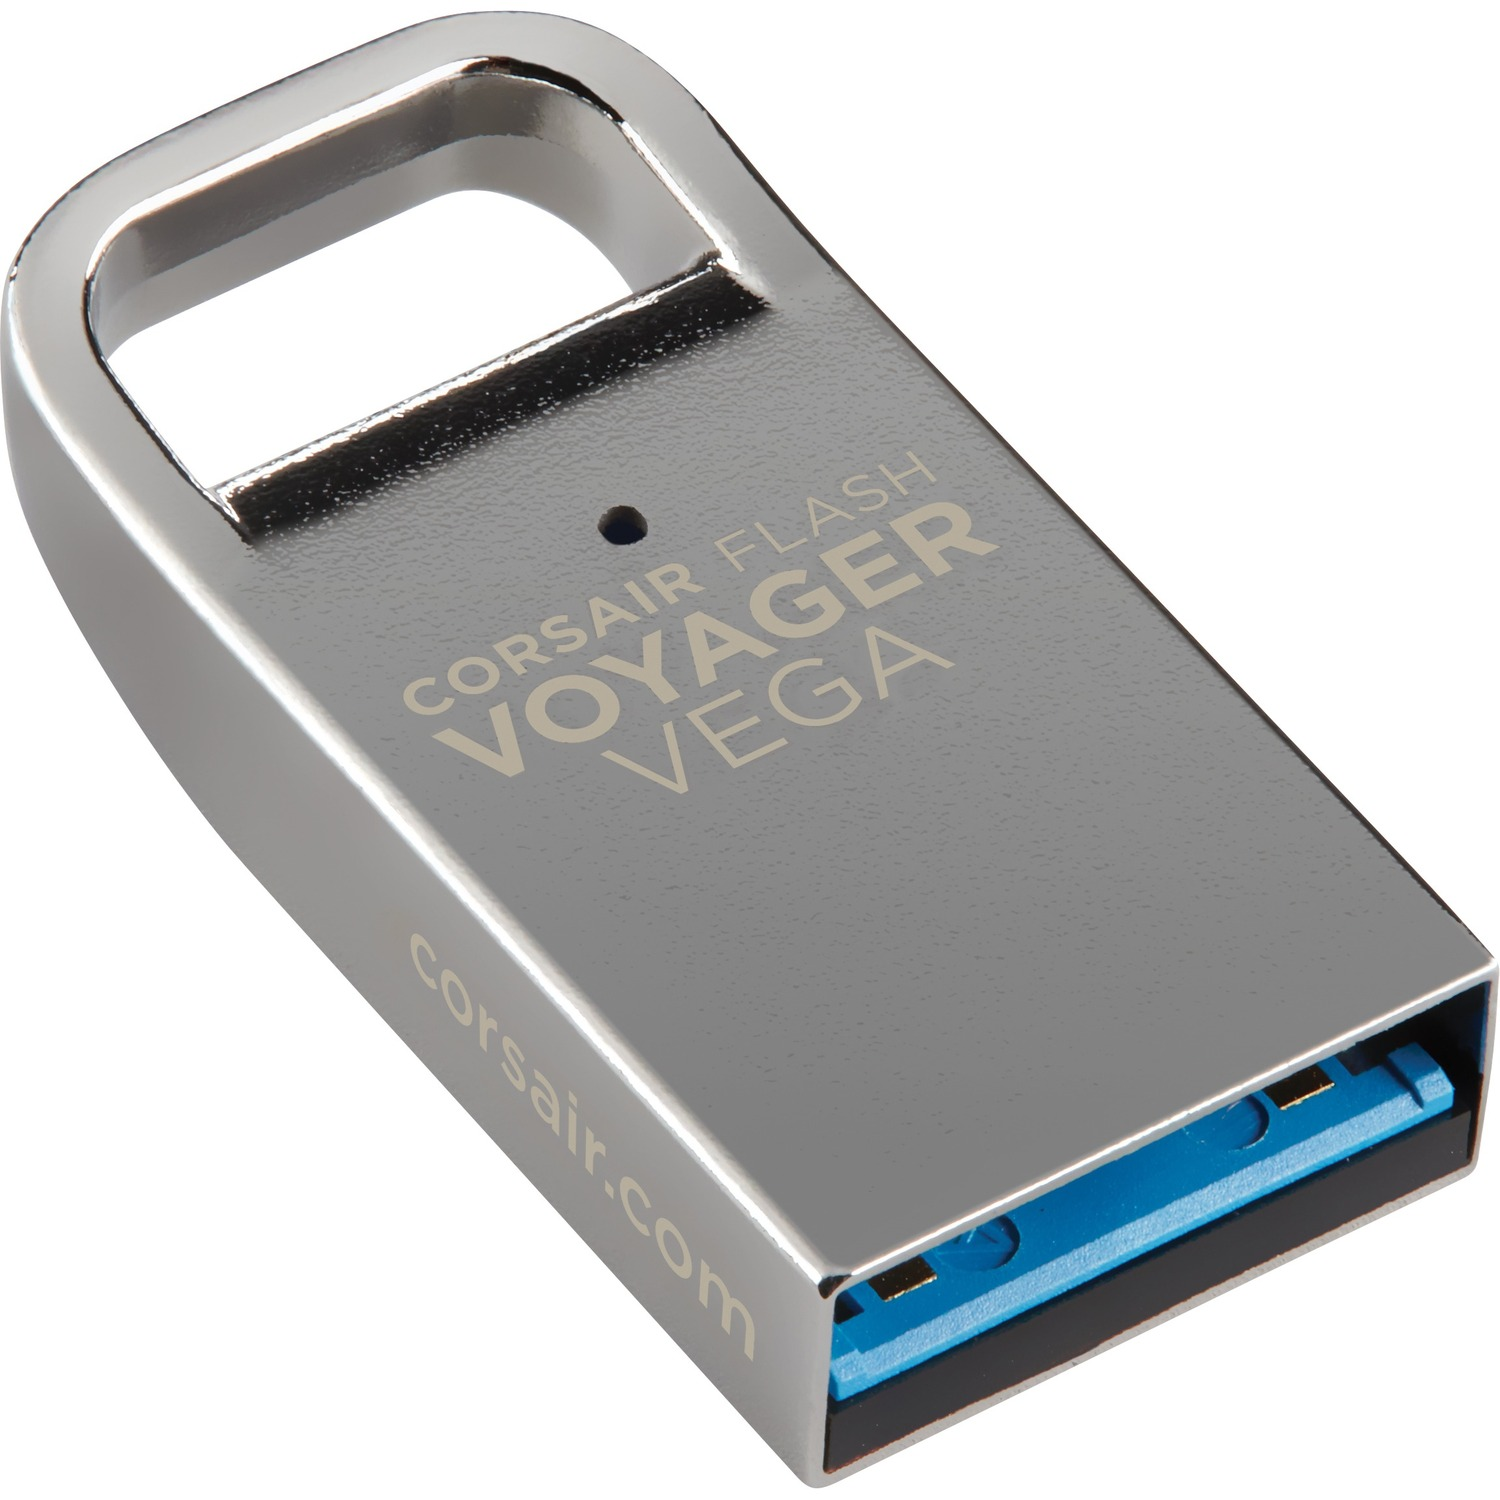 Corsair Flash Voyager Vega 32 GB USB 3.0 Flash Drive